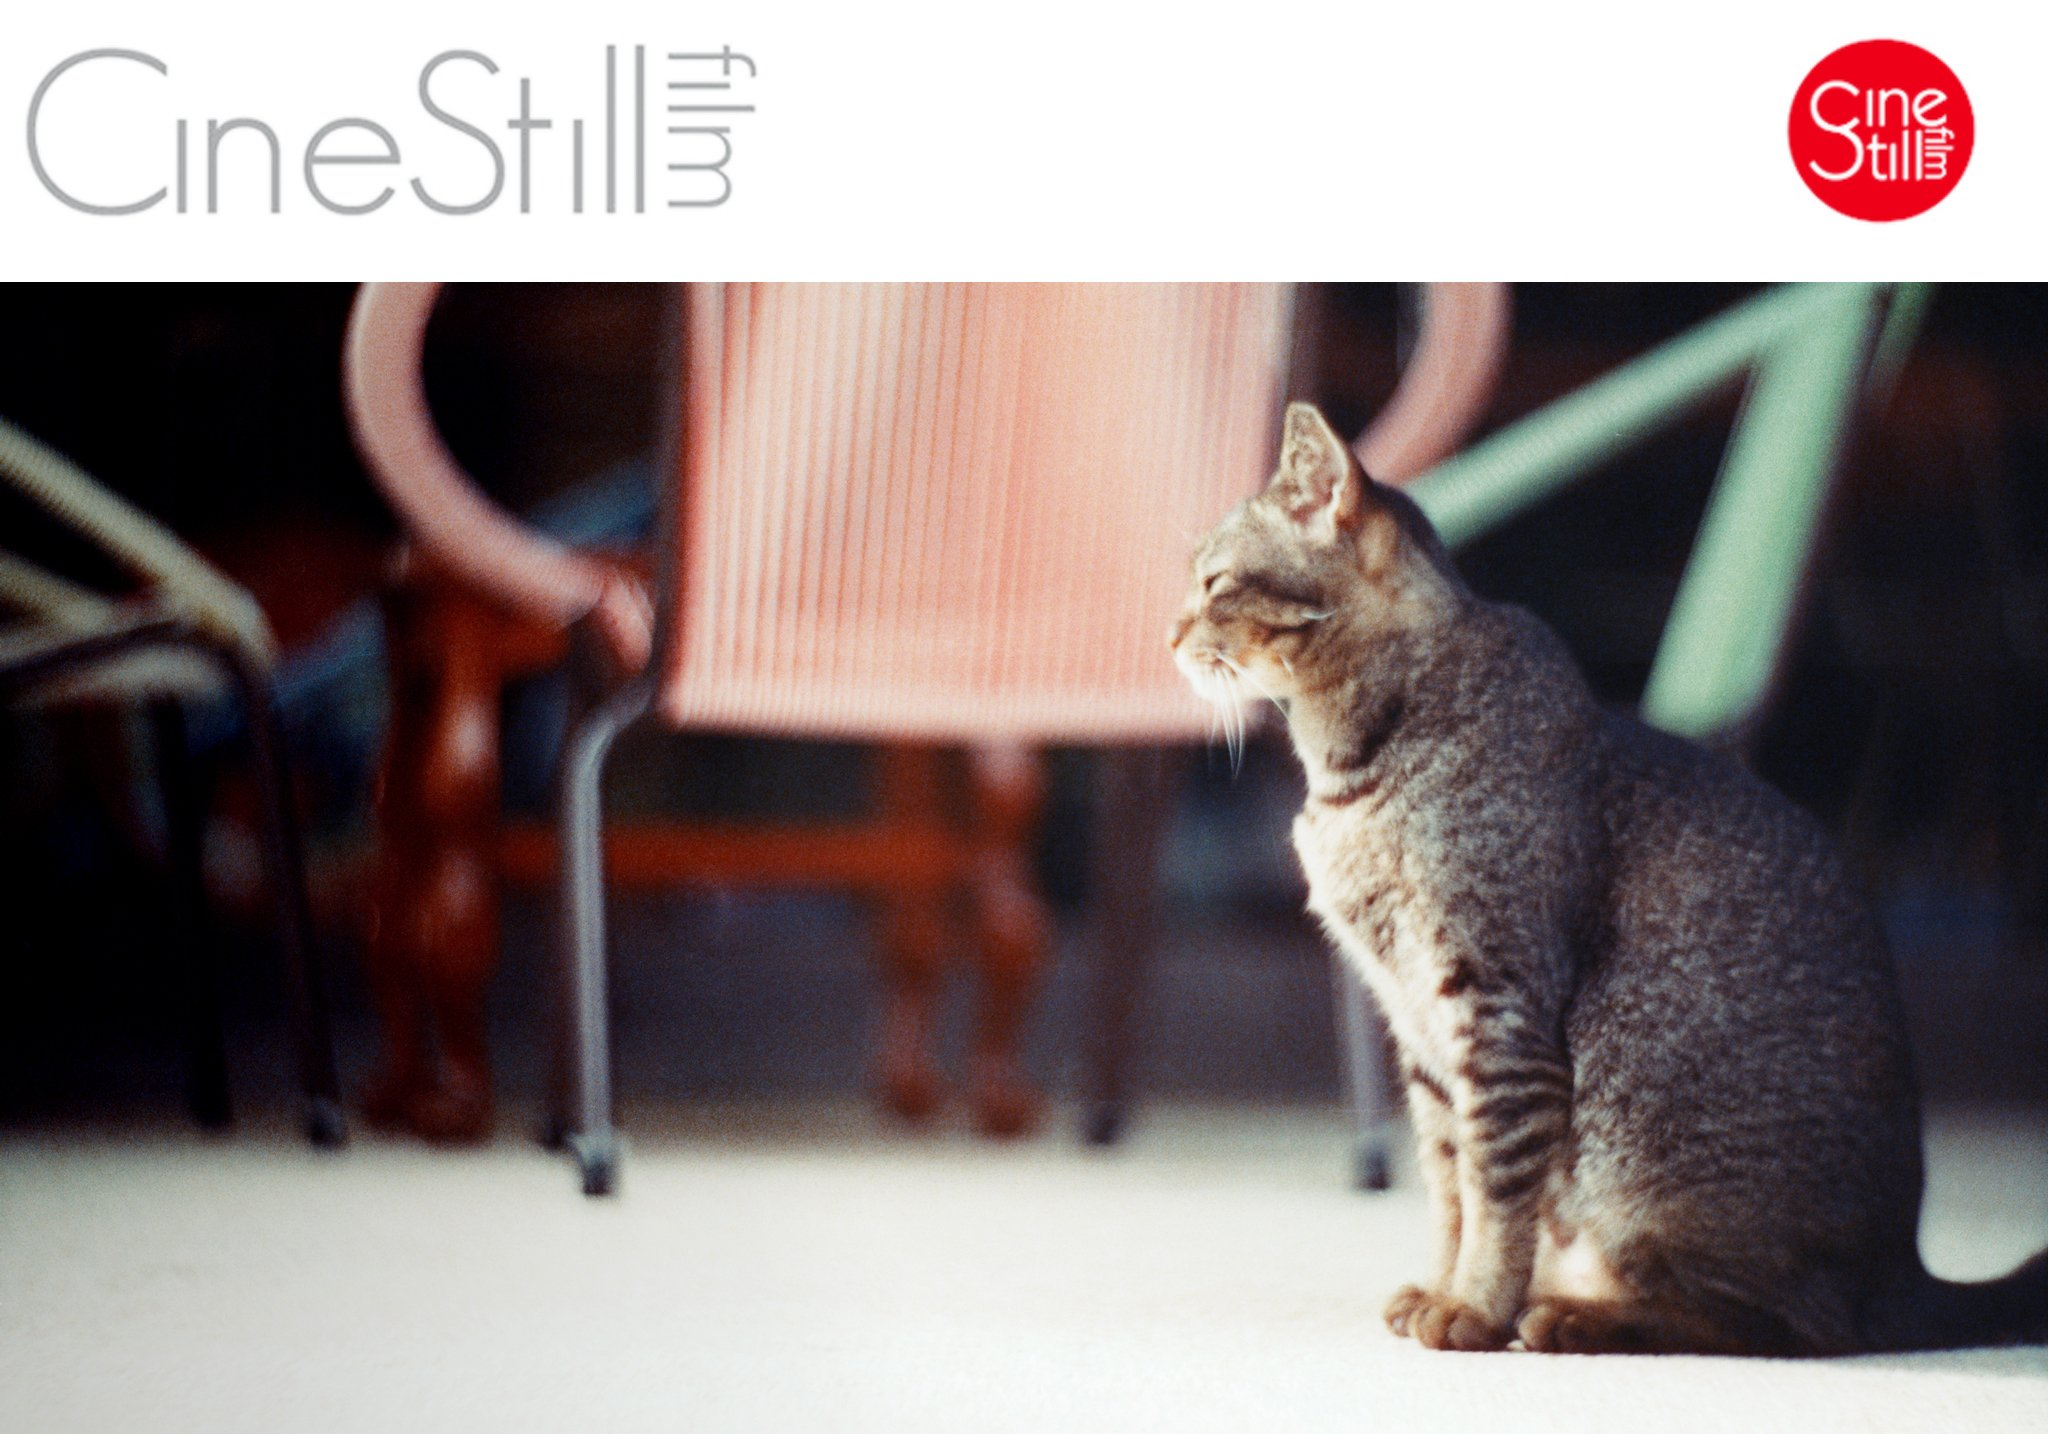 CineStill featured The Petzval Experiment in collaboration with Lomography Singapore